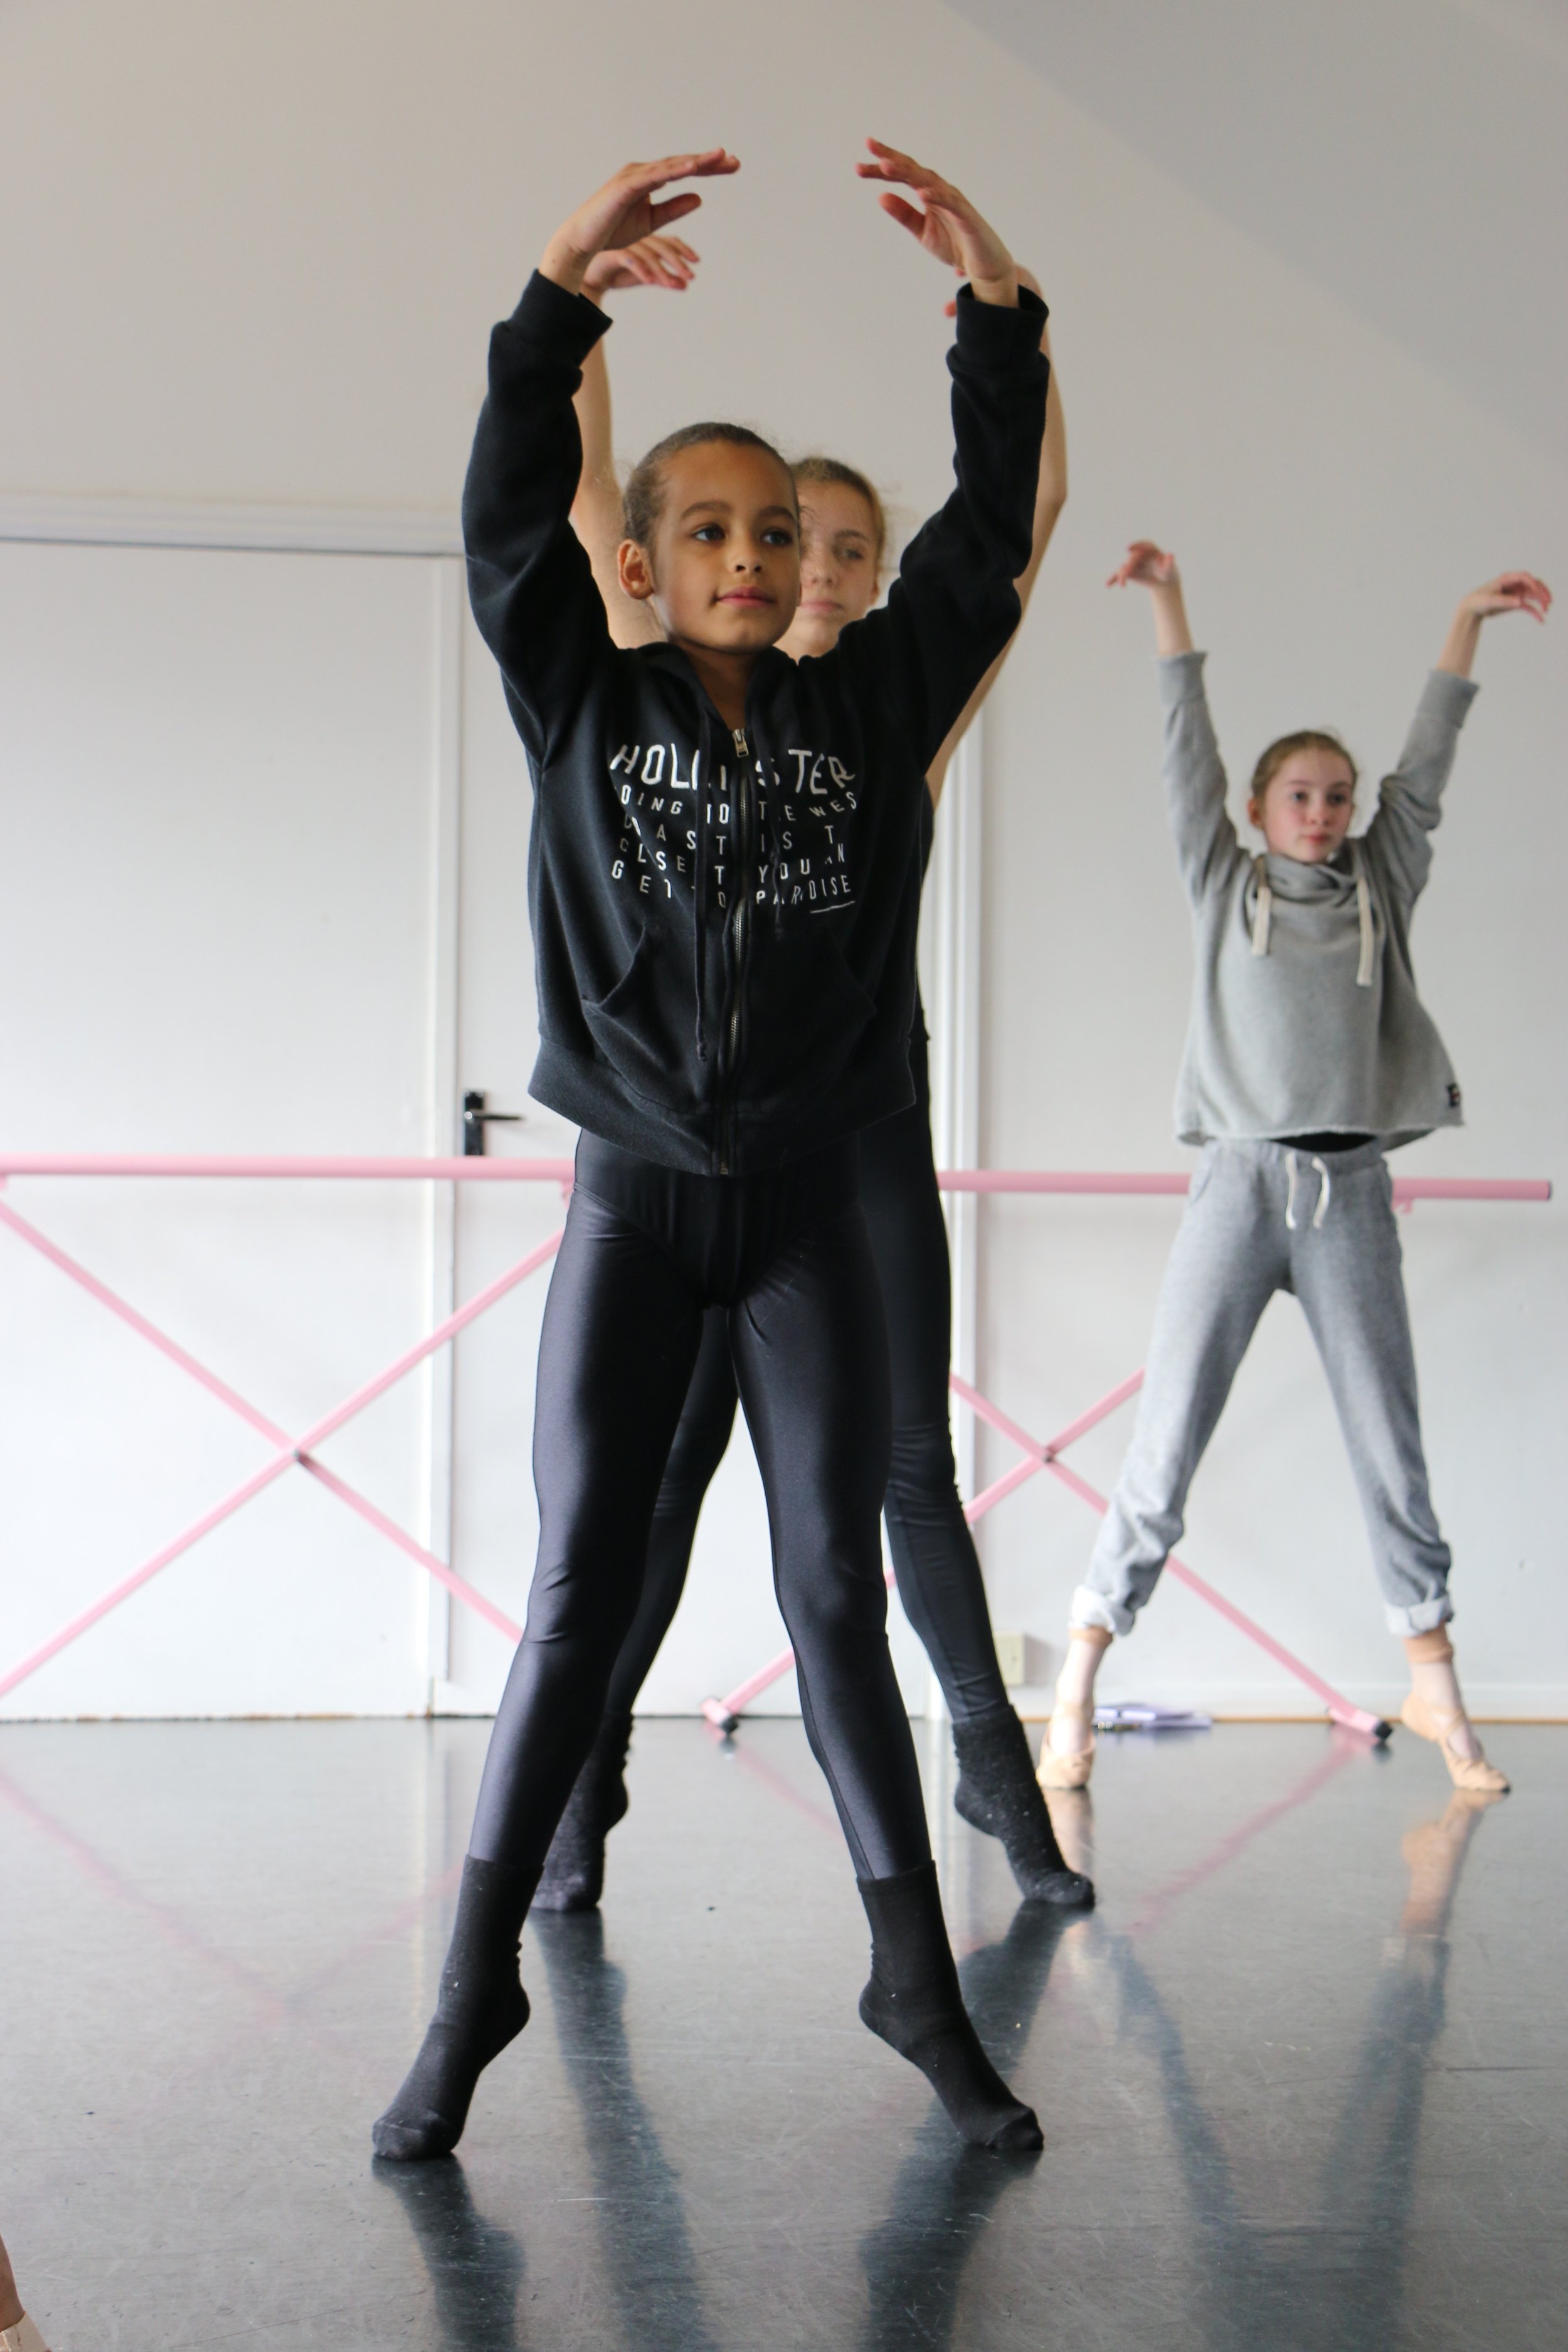 Each day, we focued on one main dance skill during technique class: Line, Balance, Turn and Jump. By doing this, we could make the students deal with one major skill each day, so that by the end of the week, they could piece it all together, and imporve their overall technique.